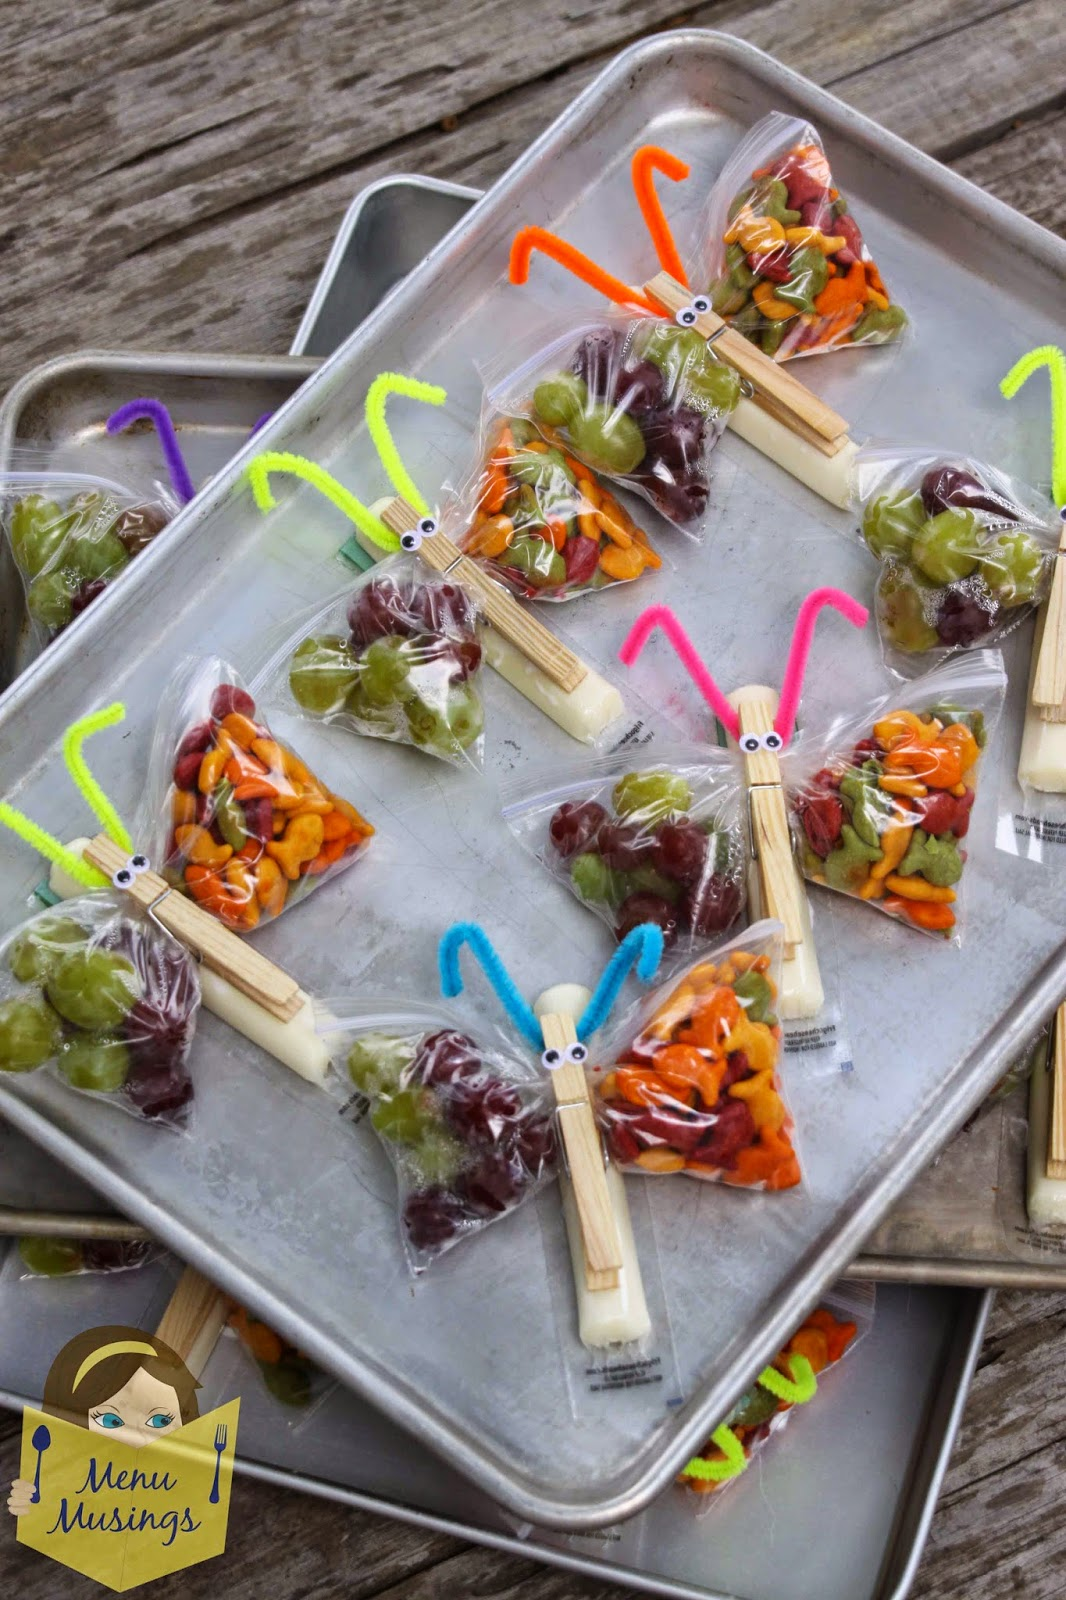 14 Easy After School Snacks Your Kids Will Go Wild Over